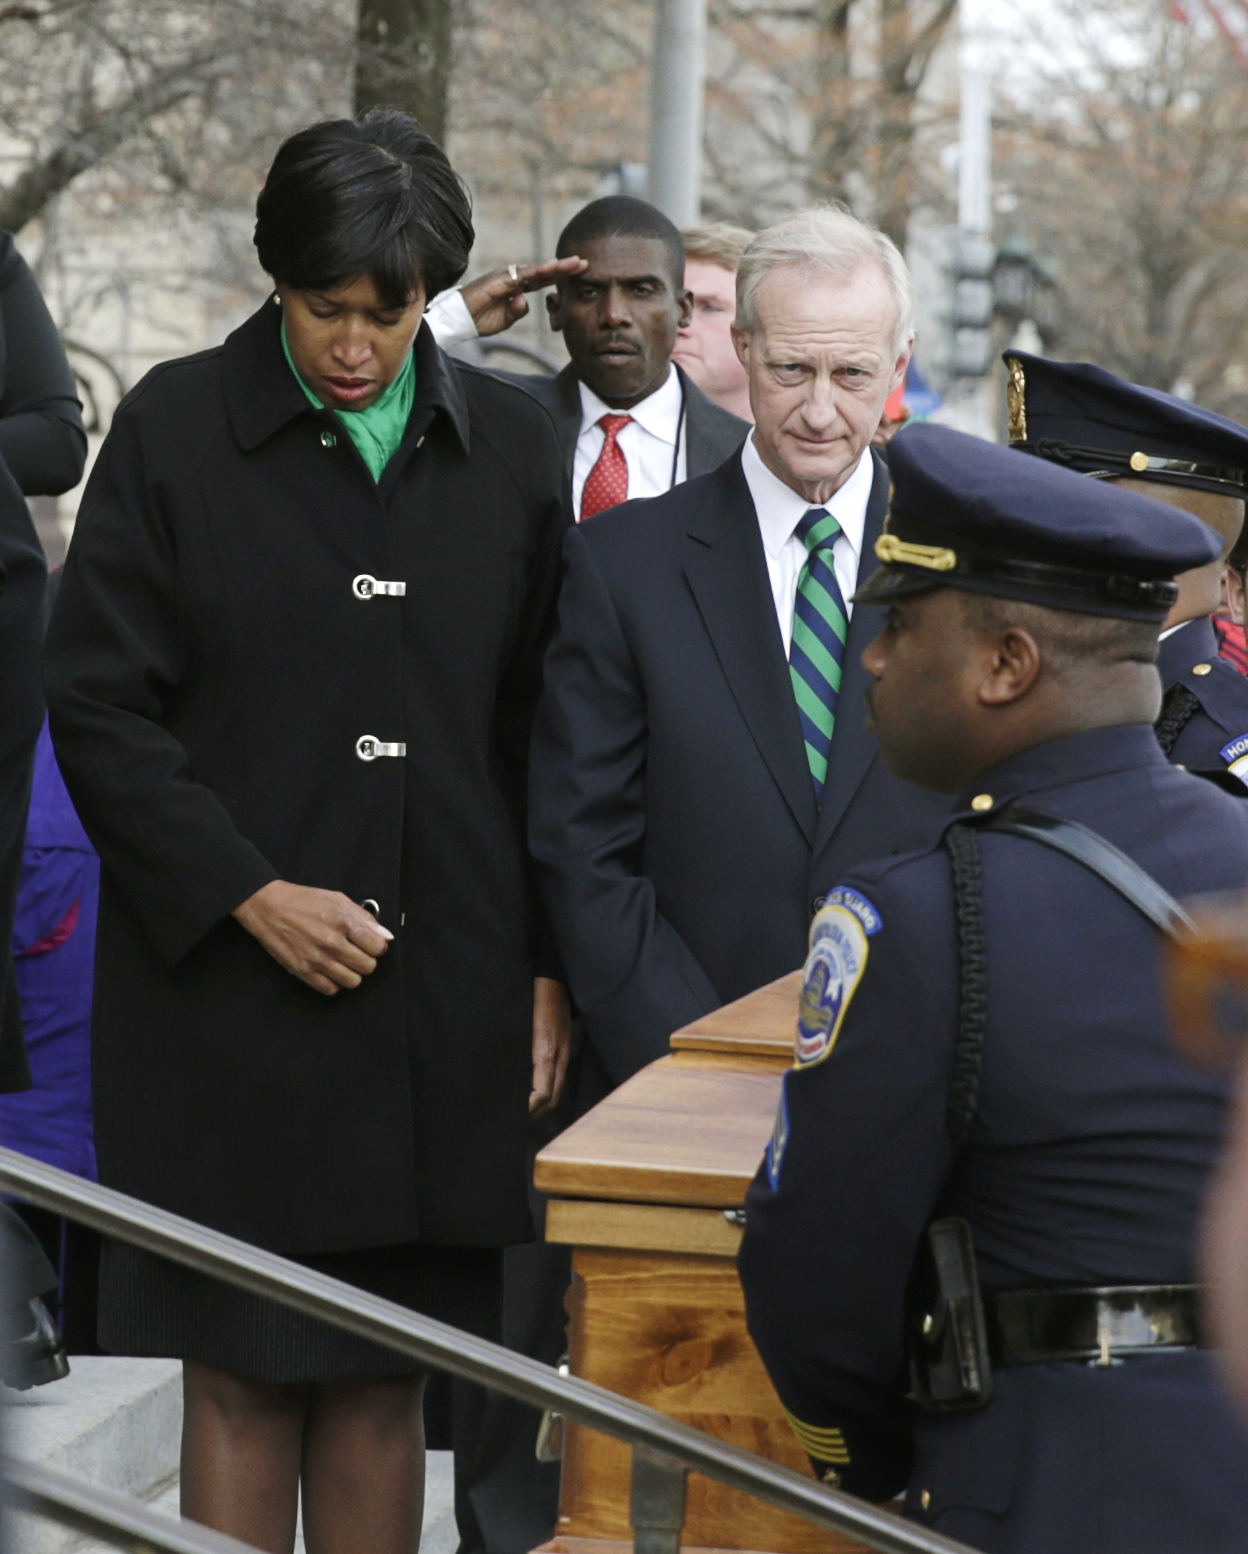 Incoming Washington, D.C. Mayor Muriel Bowser (L) and City Councilmember Jack Evans (R) bow their heads as former Washington D.C. Mayor and city councilmember Marion Barry's casket arrives at the Wilson Building in Washington December 4, 2014. REUTERS/Gary Cameron